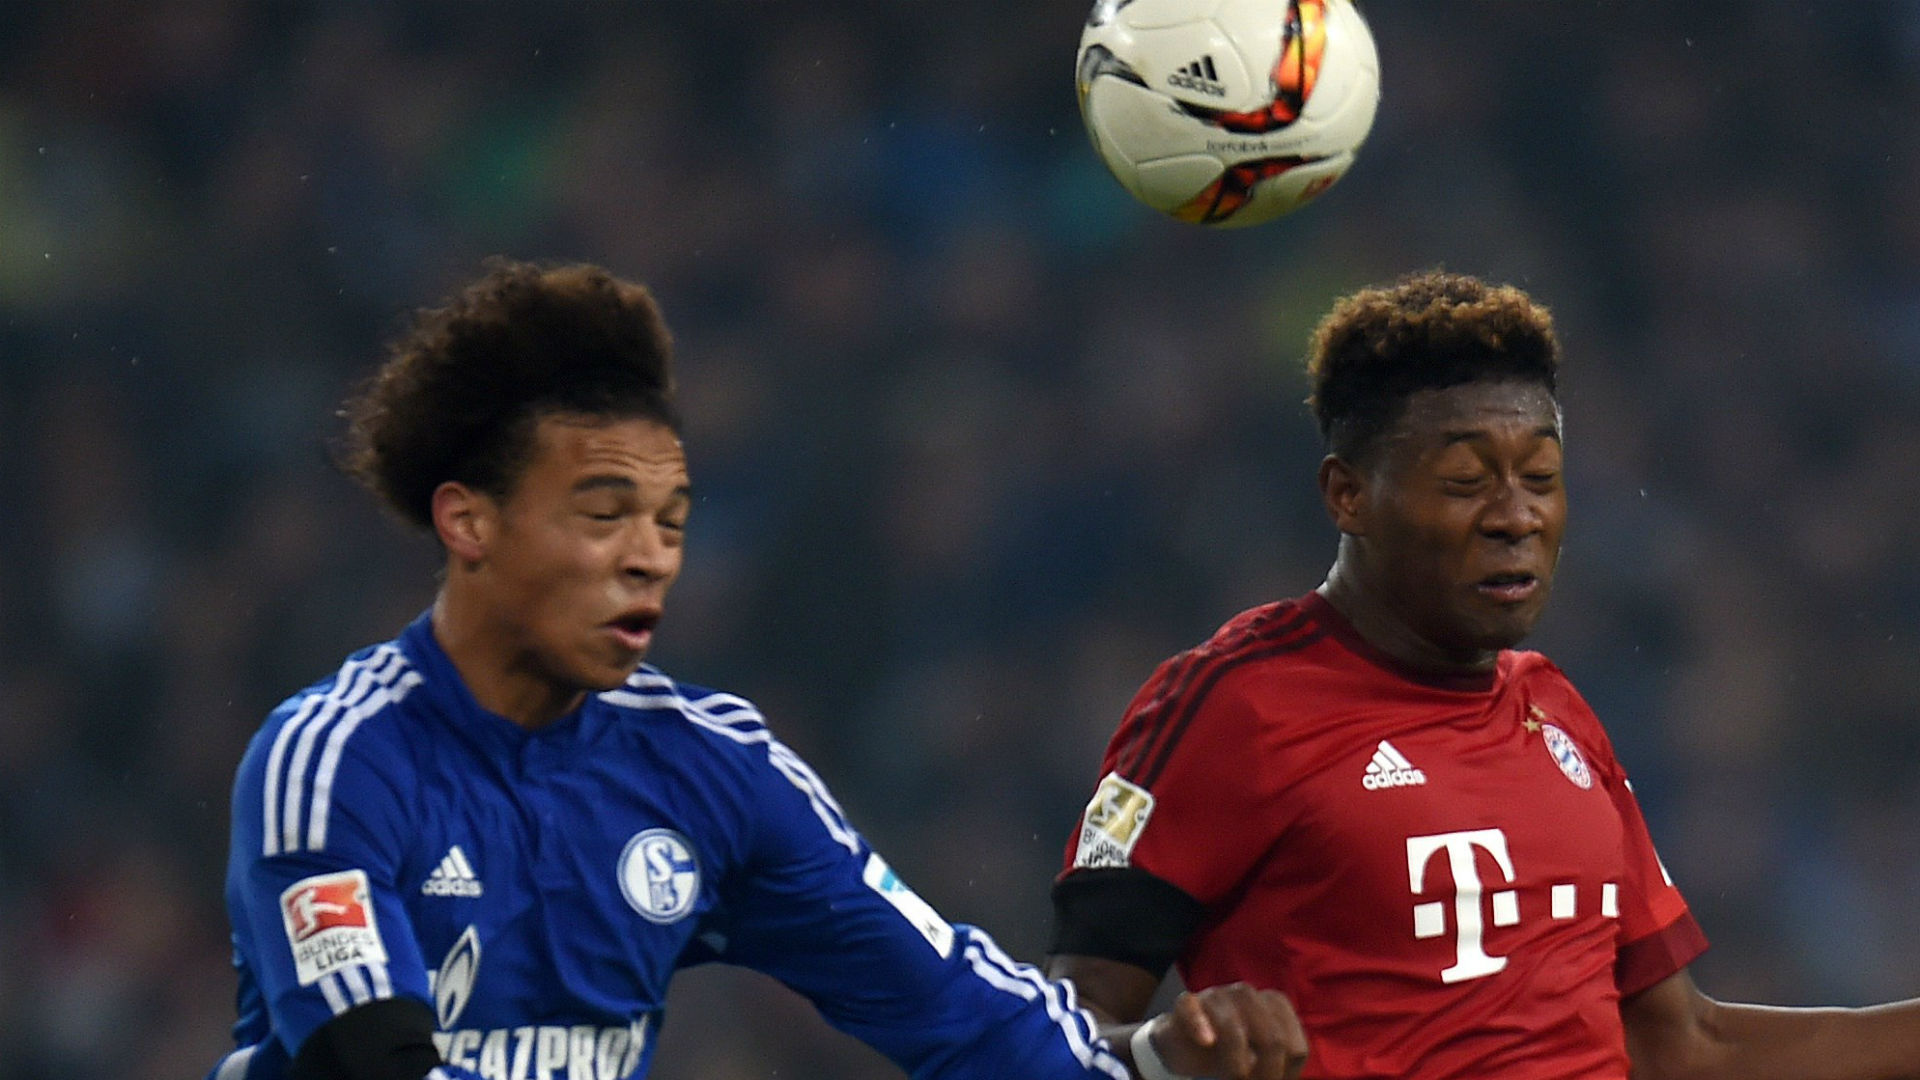 Bayern and Man City to swap Alaba and Sane? Rummenigge dismisses idea